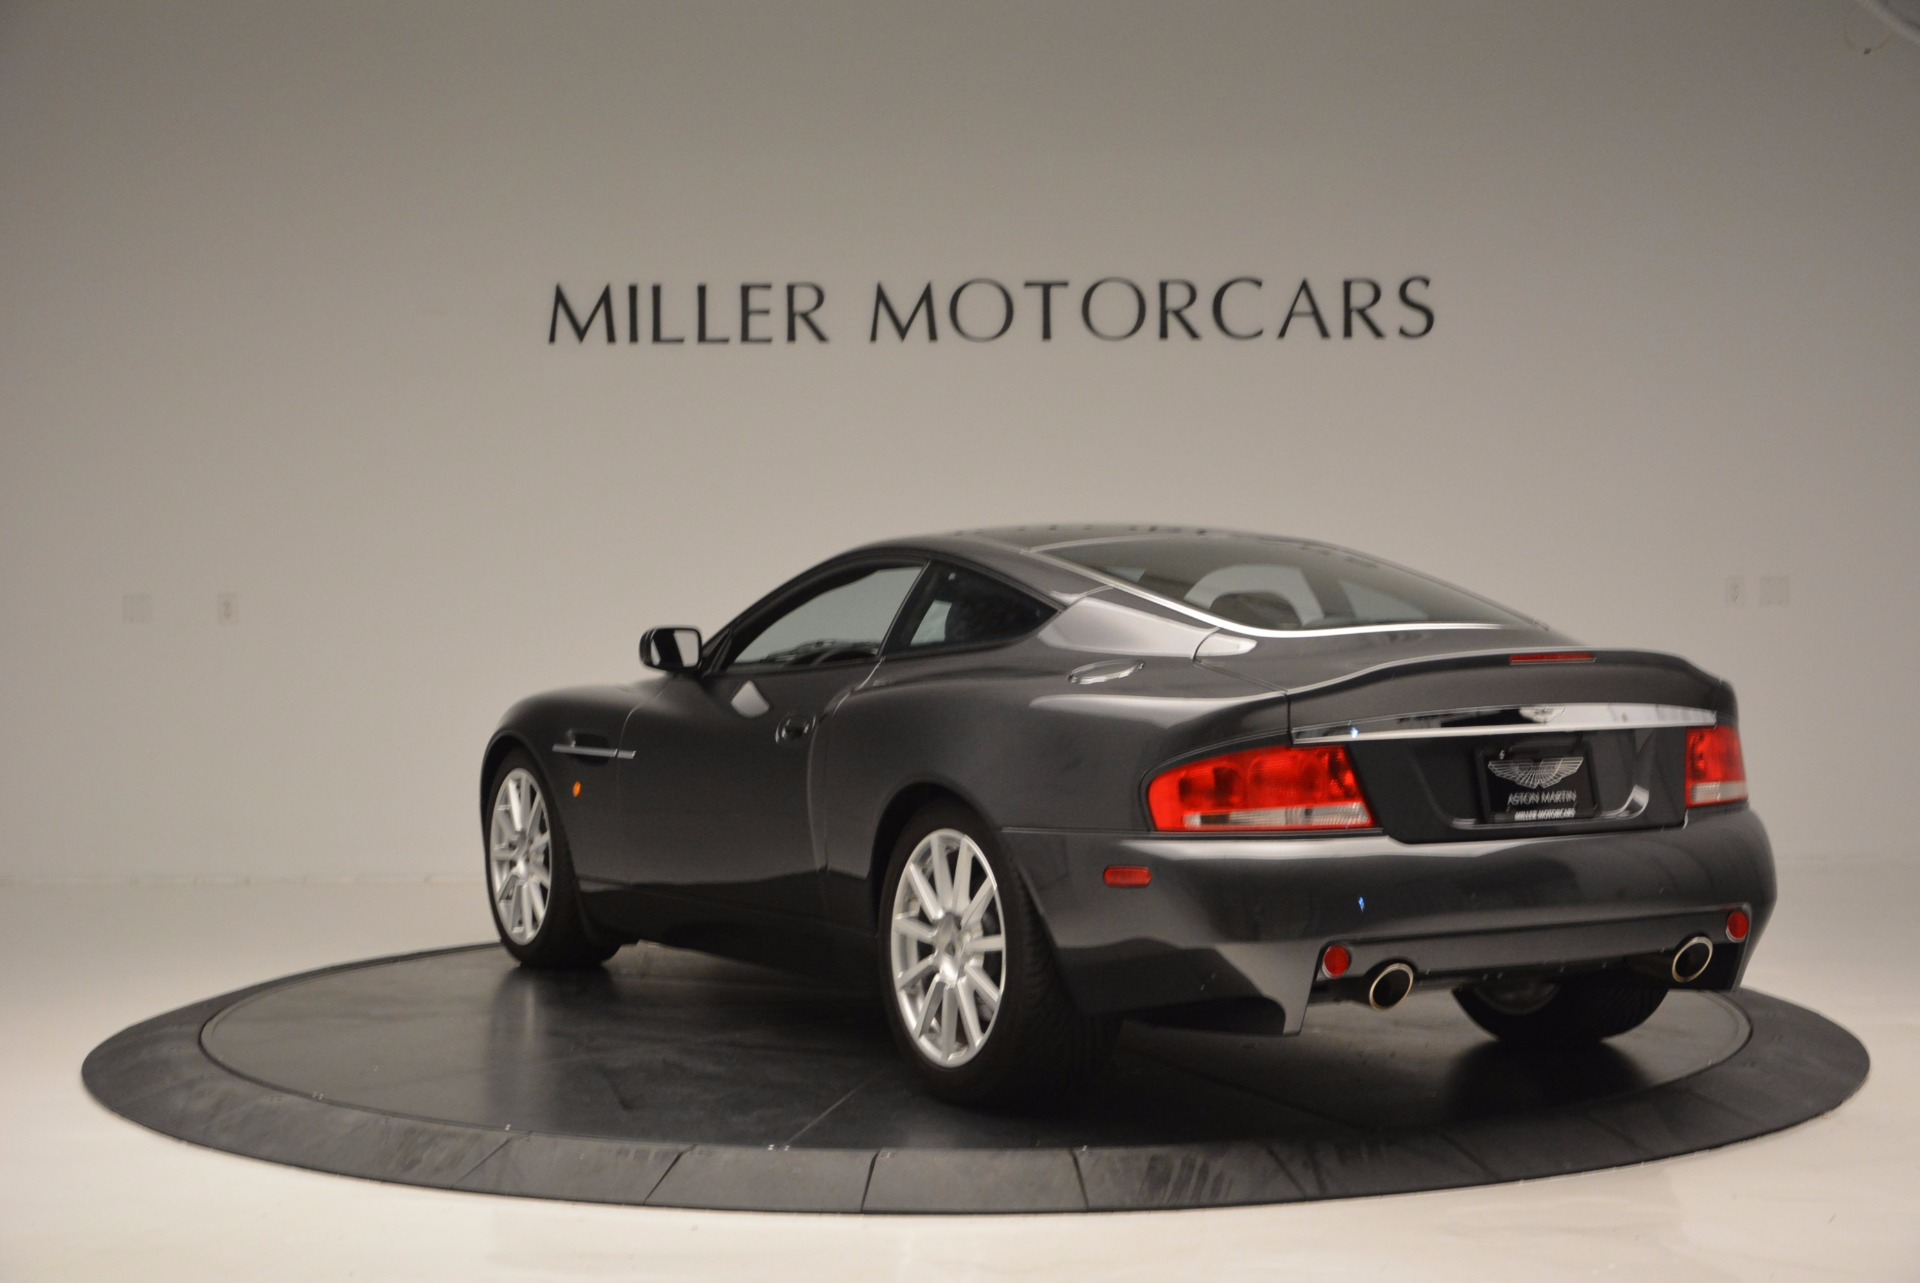 Used 2005 Aston Martin V12 Vanquish S For Sale In Greenwich, CT. Alfa Romeo of Greenwich, 7097 645_p5